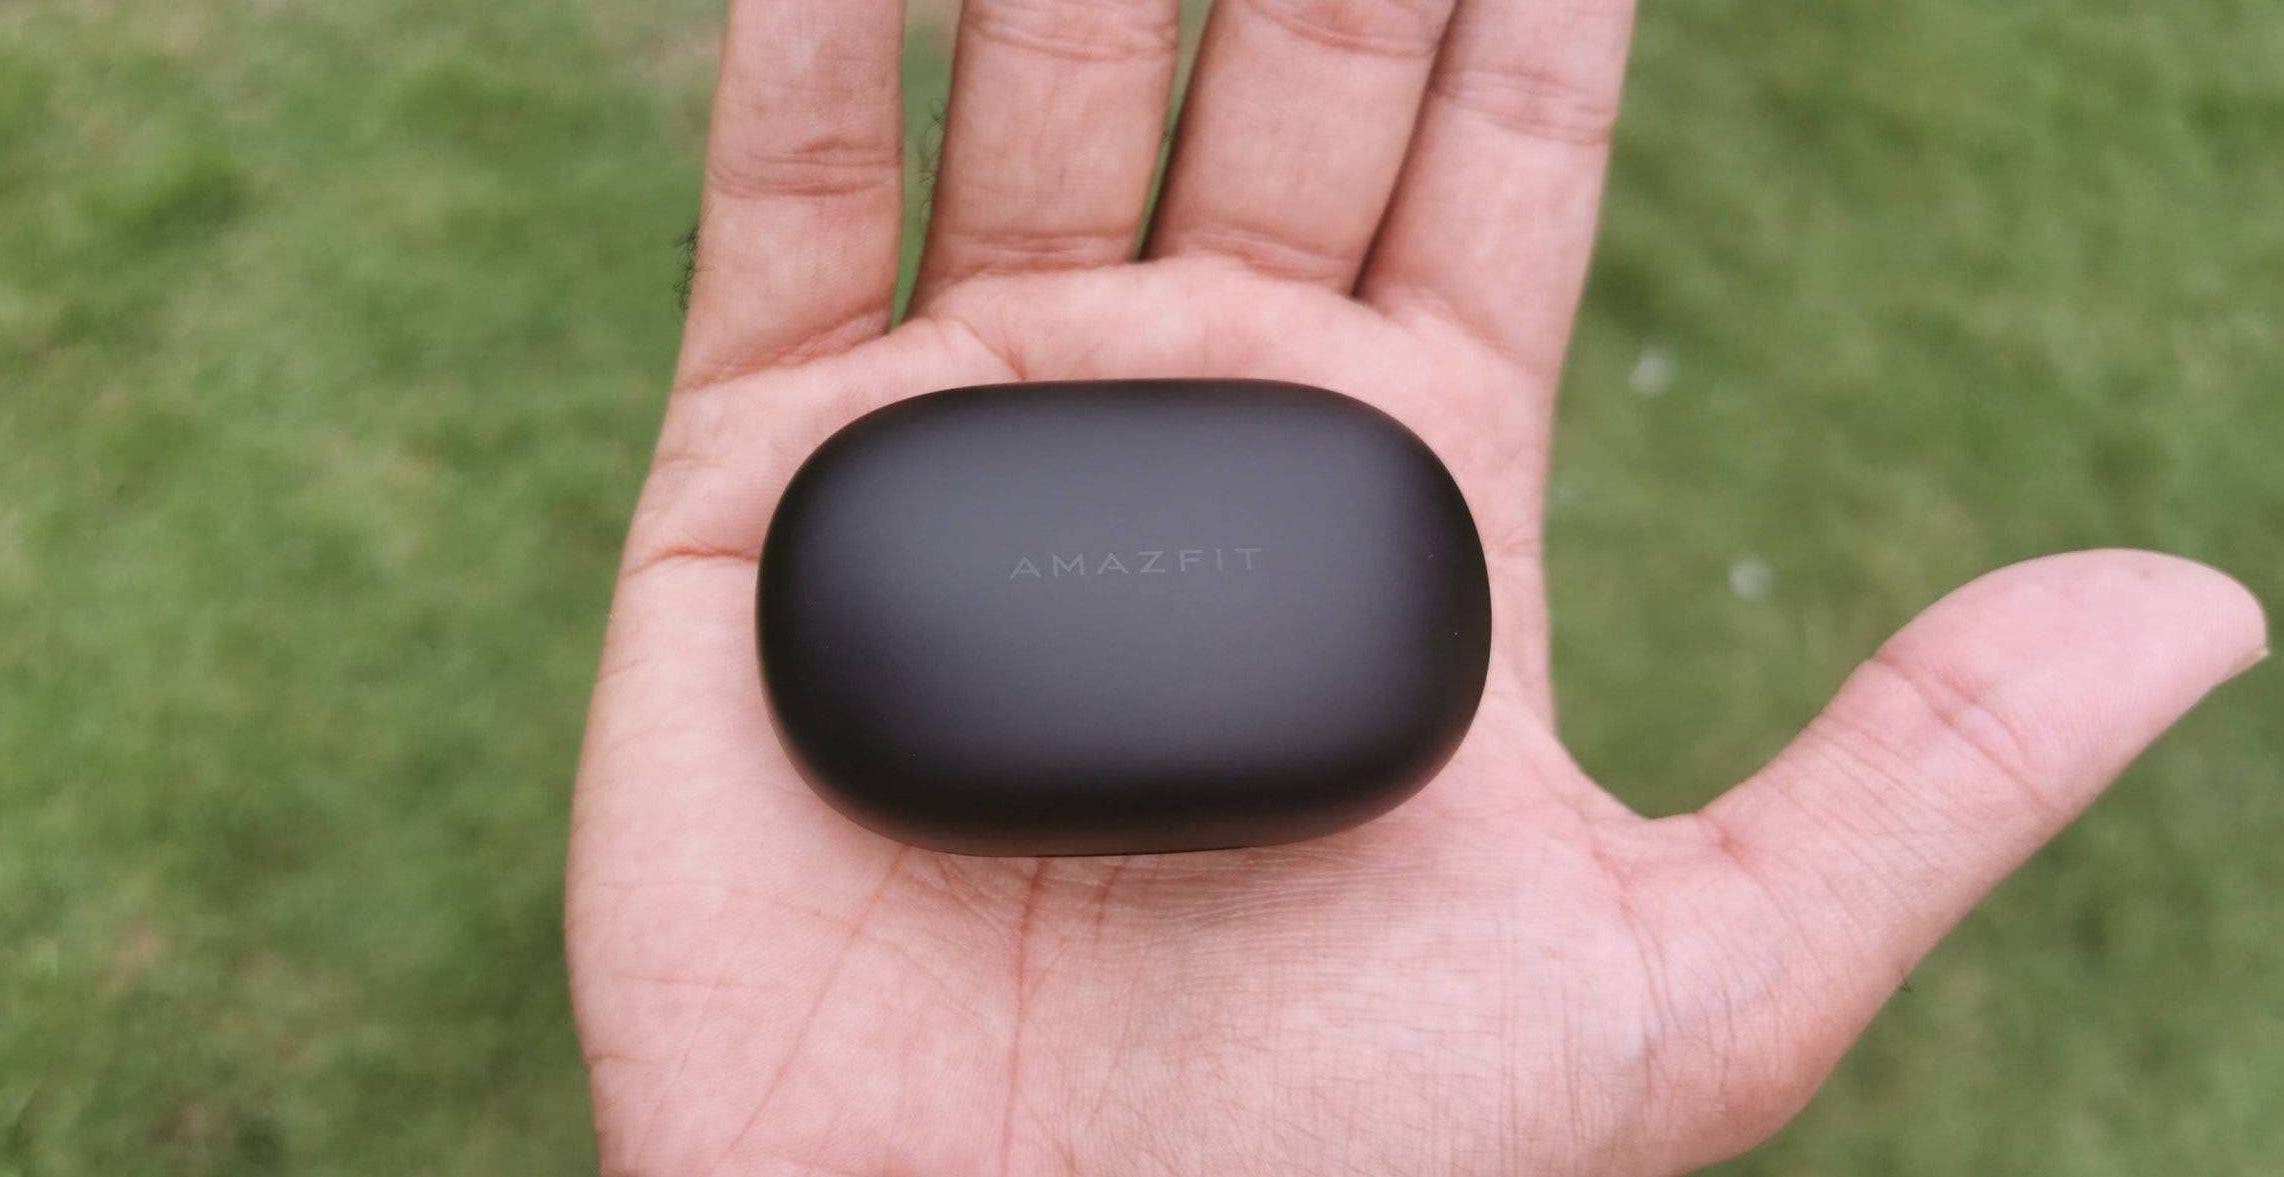 Amazfit Powerbuds case